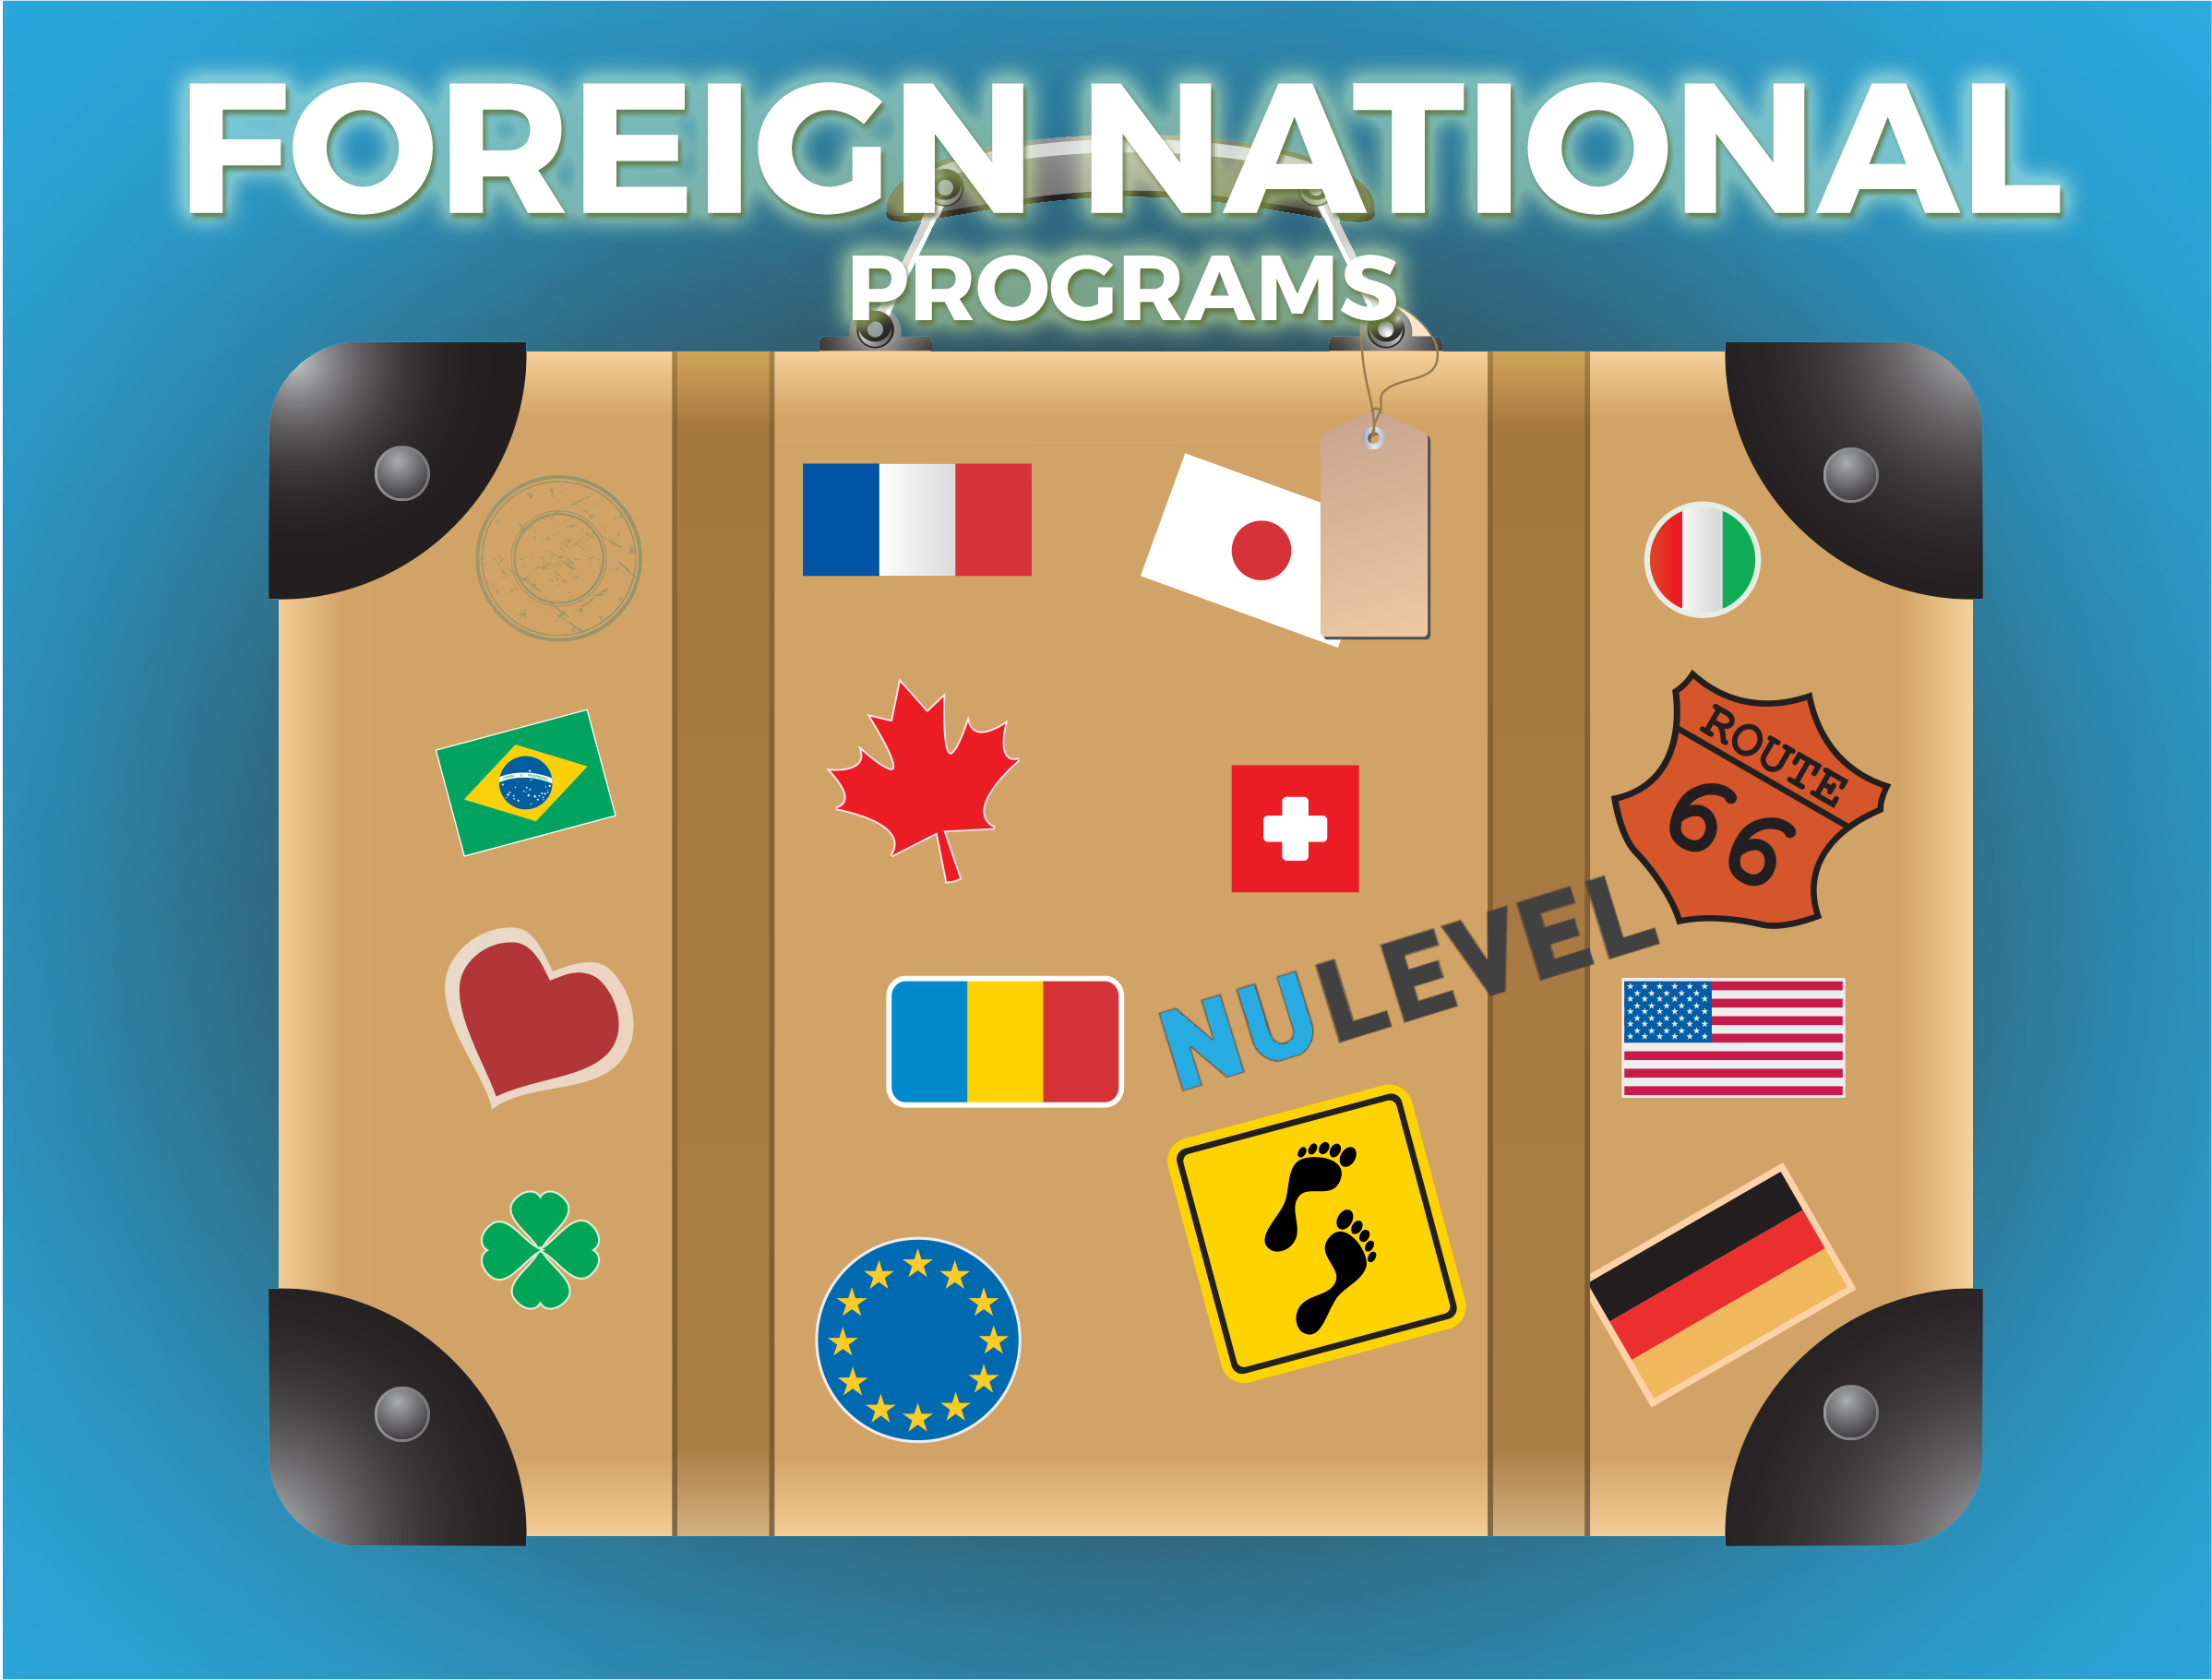 Foreign National Programs | Products and Services | Nu Level Equity | Mortgage Services